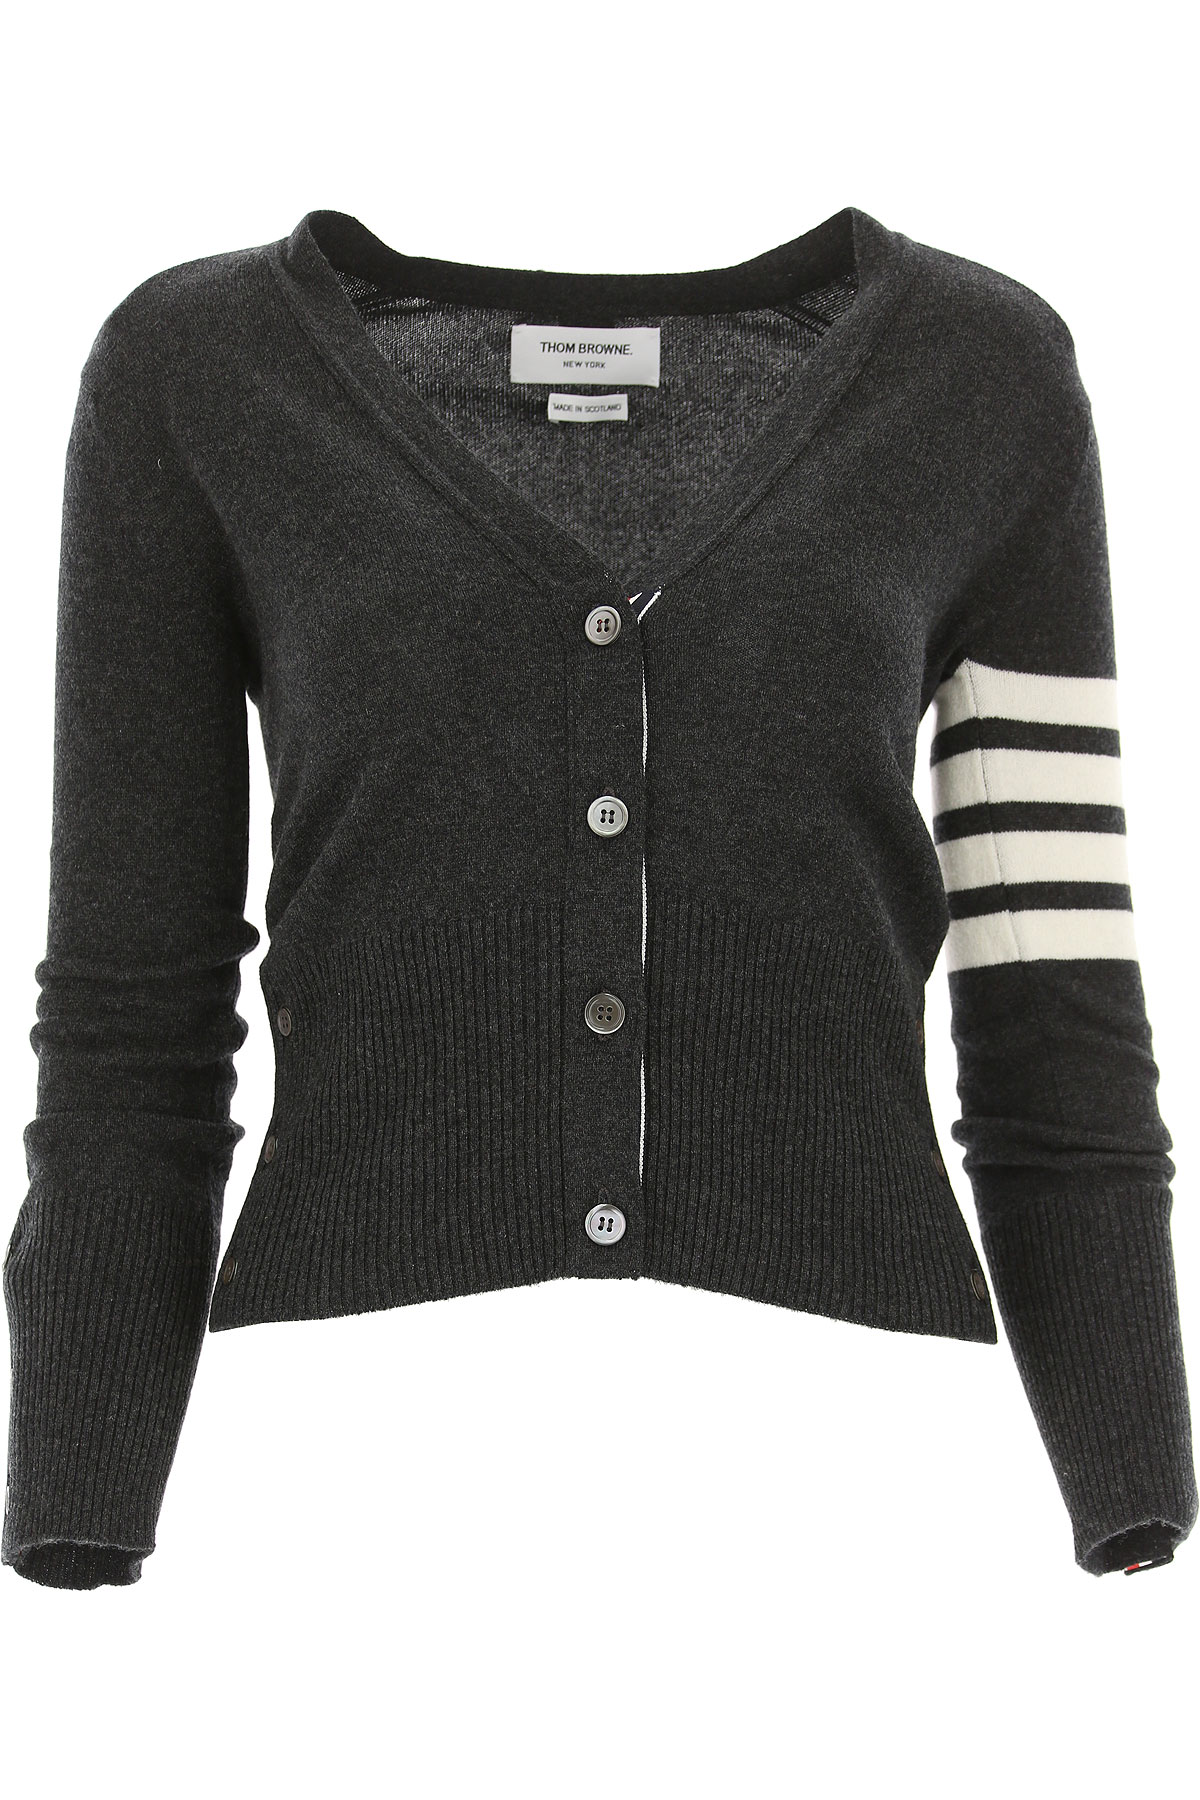 Image of THOM BROWNE Sweater for Women Jumper, Dark Anthracite Grey, Cashmere, 2017, 4 6 8